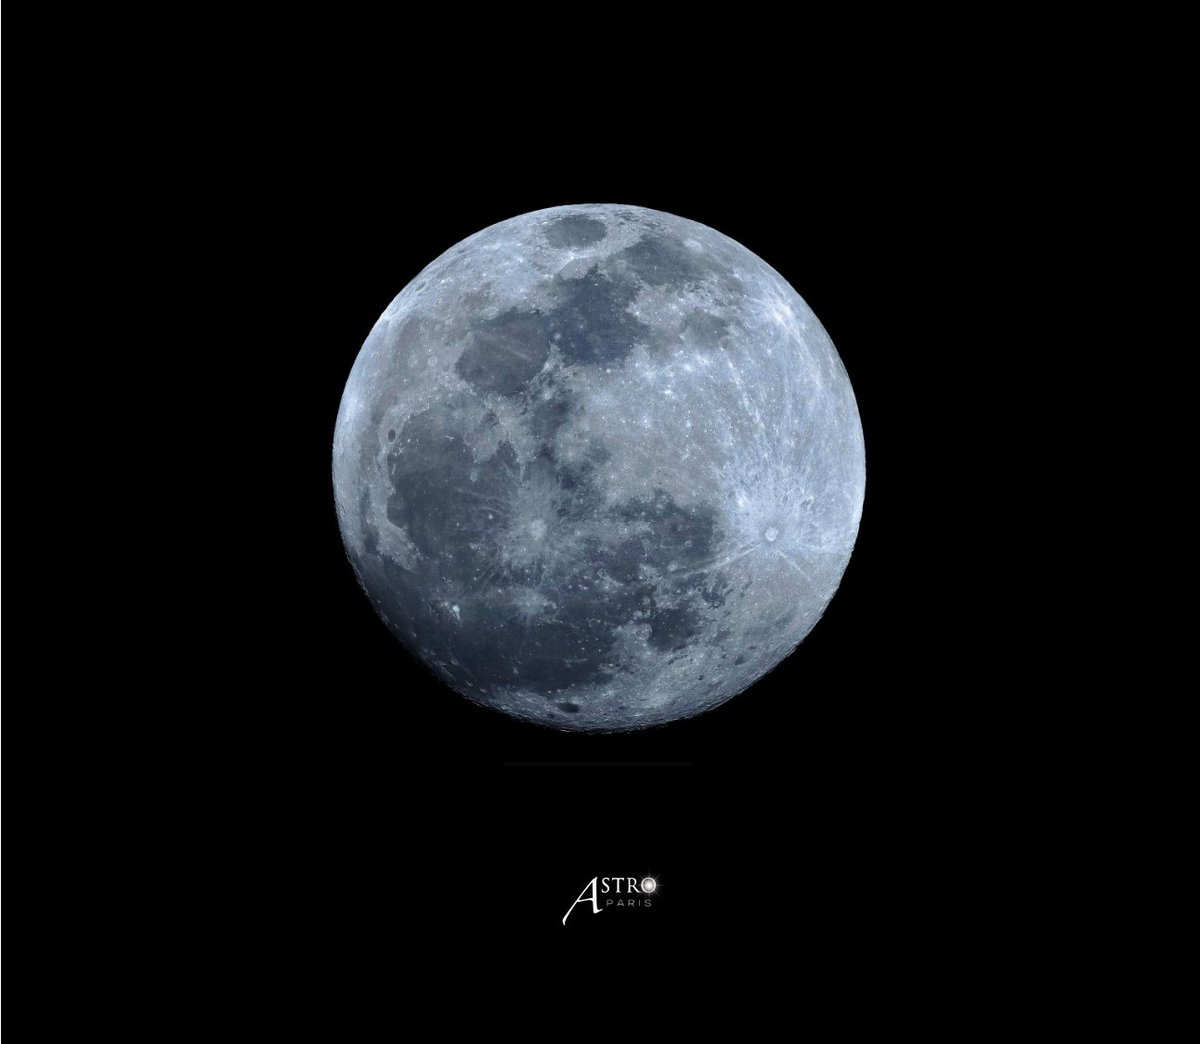 October has two full Moons this year: the full Harvest Moon on October 1 and the full Hunter's Moon on the 31st - Halloween. Some almanacs and calendars assert that when two full moons occur within a calendar month, the second full moon is called a Blue Moon.